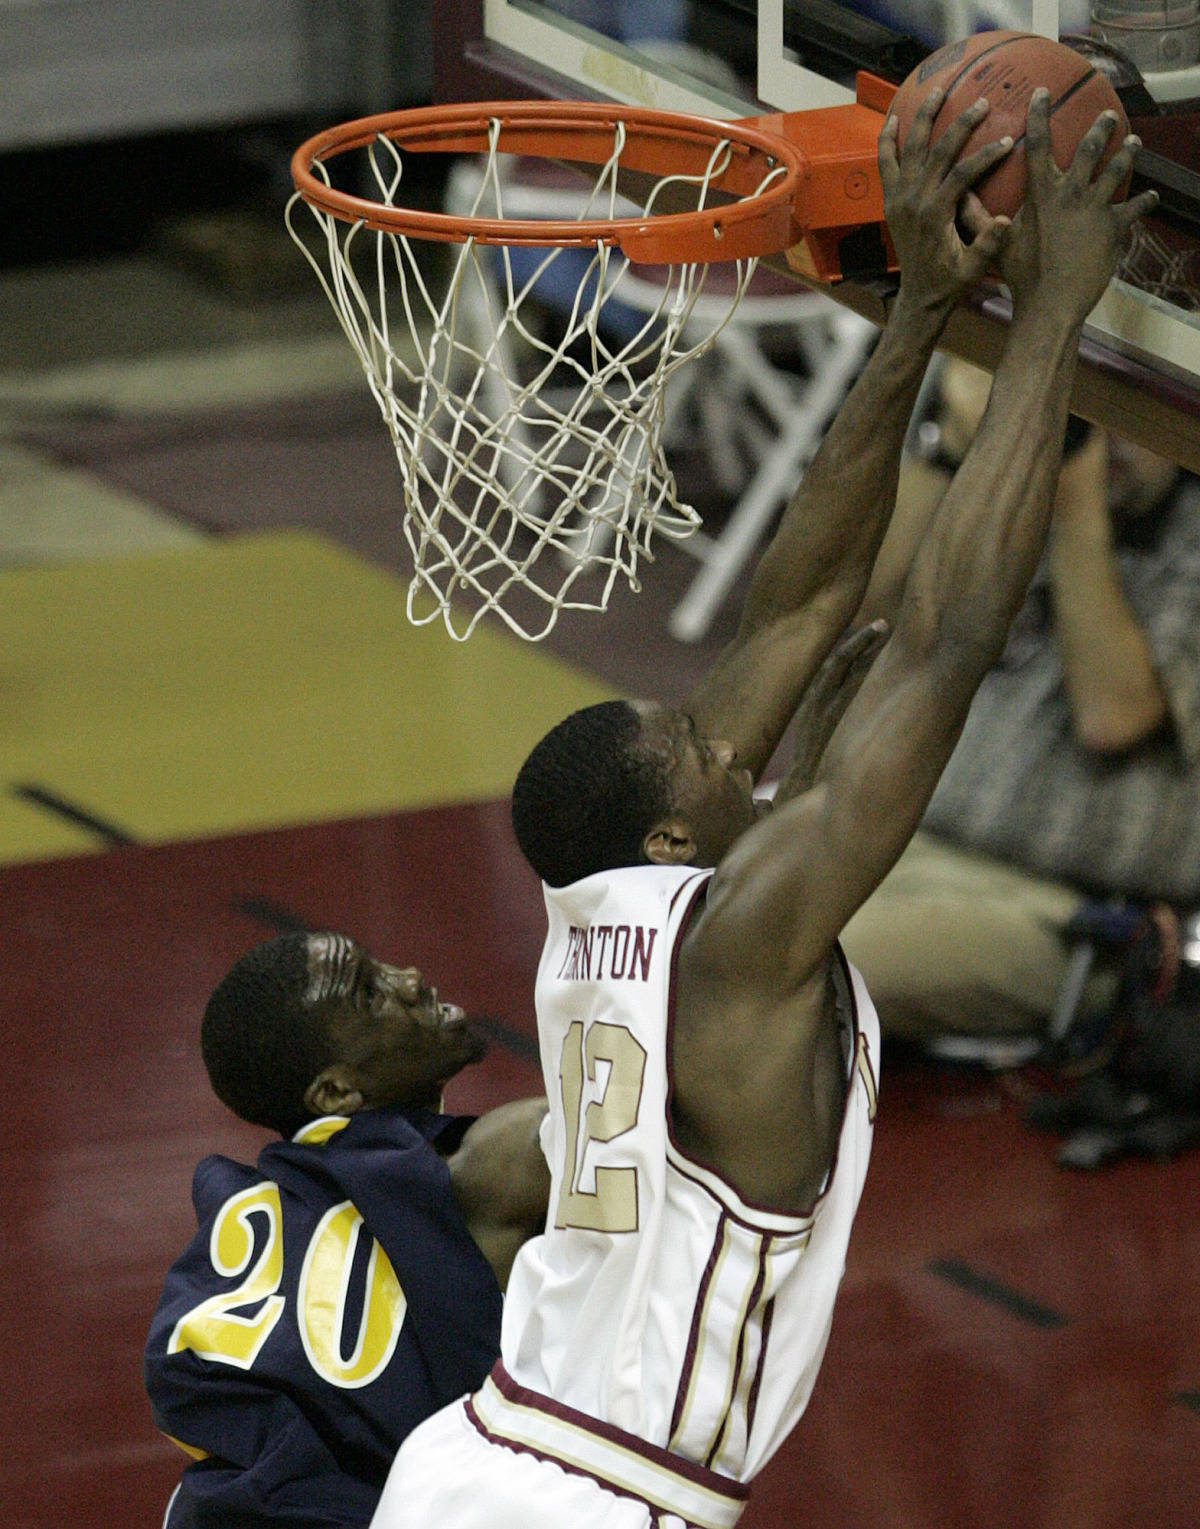 Florida State's Al Thornton, right, blocks the shot of Toledo's Justin Ingram against the backboard. (AP Photo/Steve Cannon)